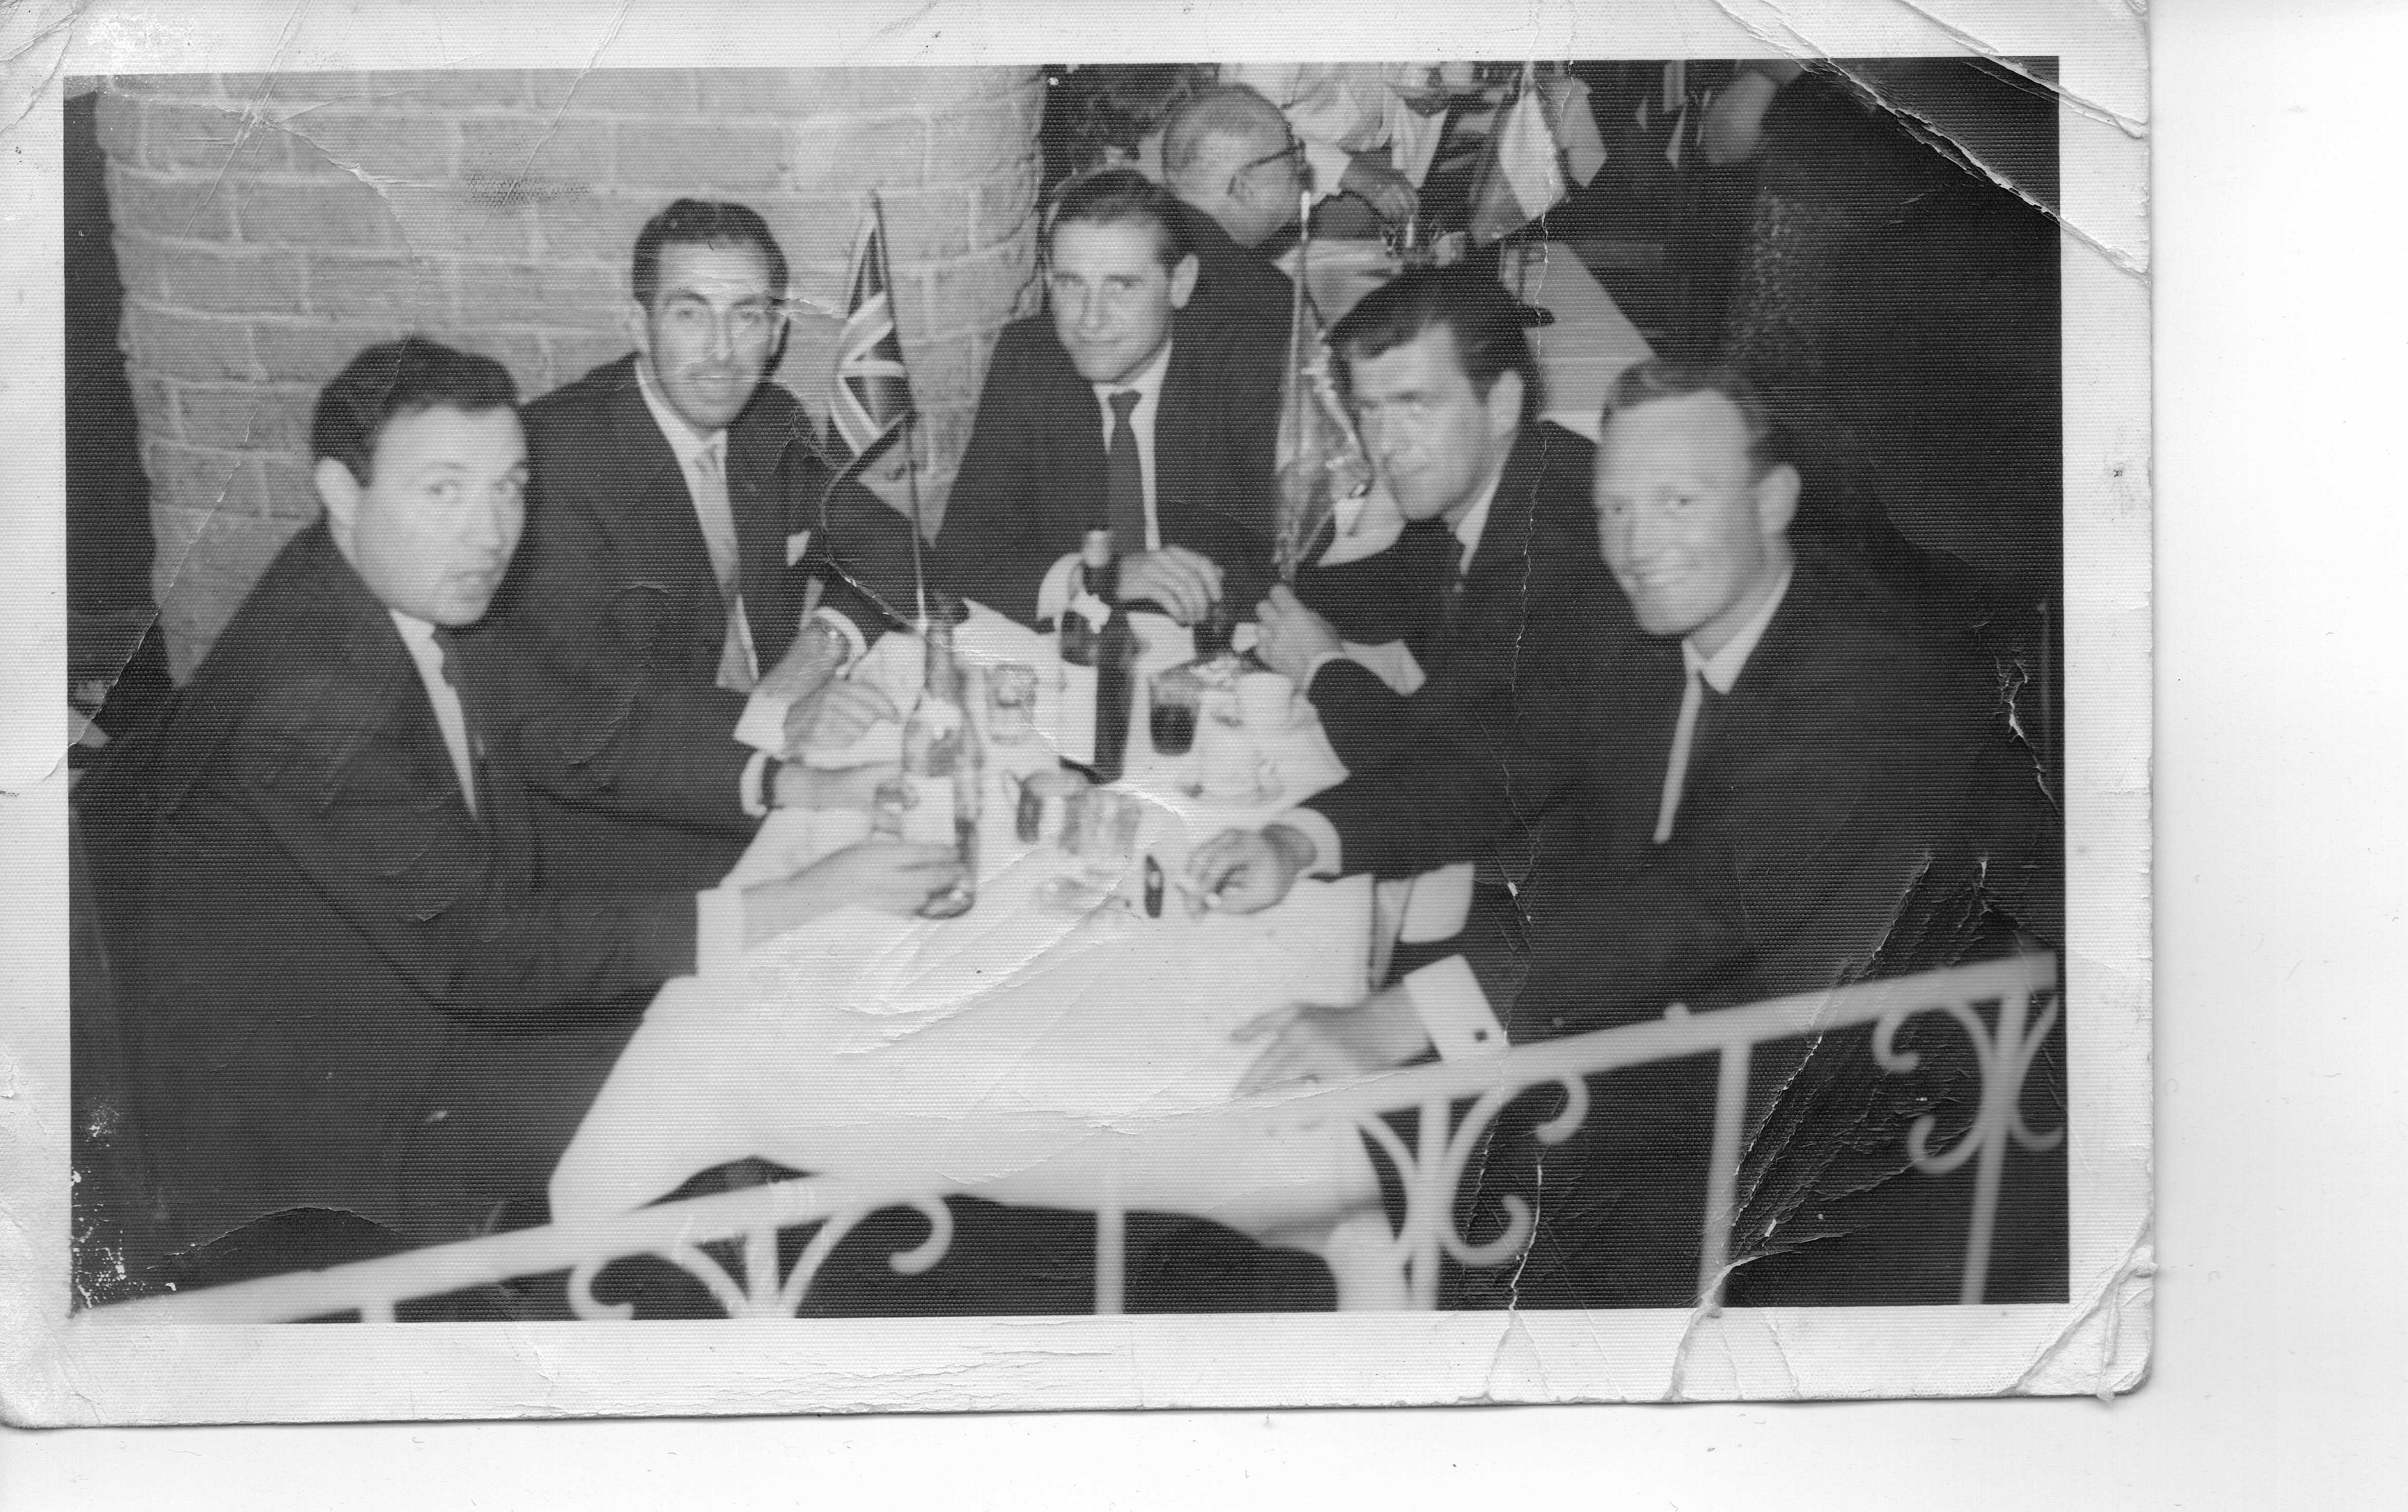 Crew in Chile.  L to R: Bob Purcell, Ozzie Vertigo, Geoff Milsom, Jim Rowe and A N Other